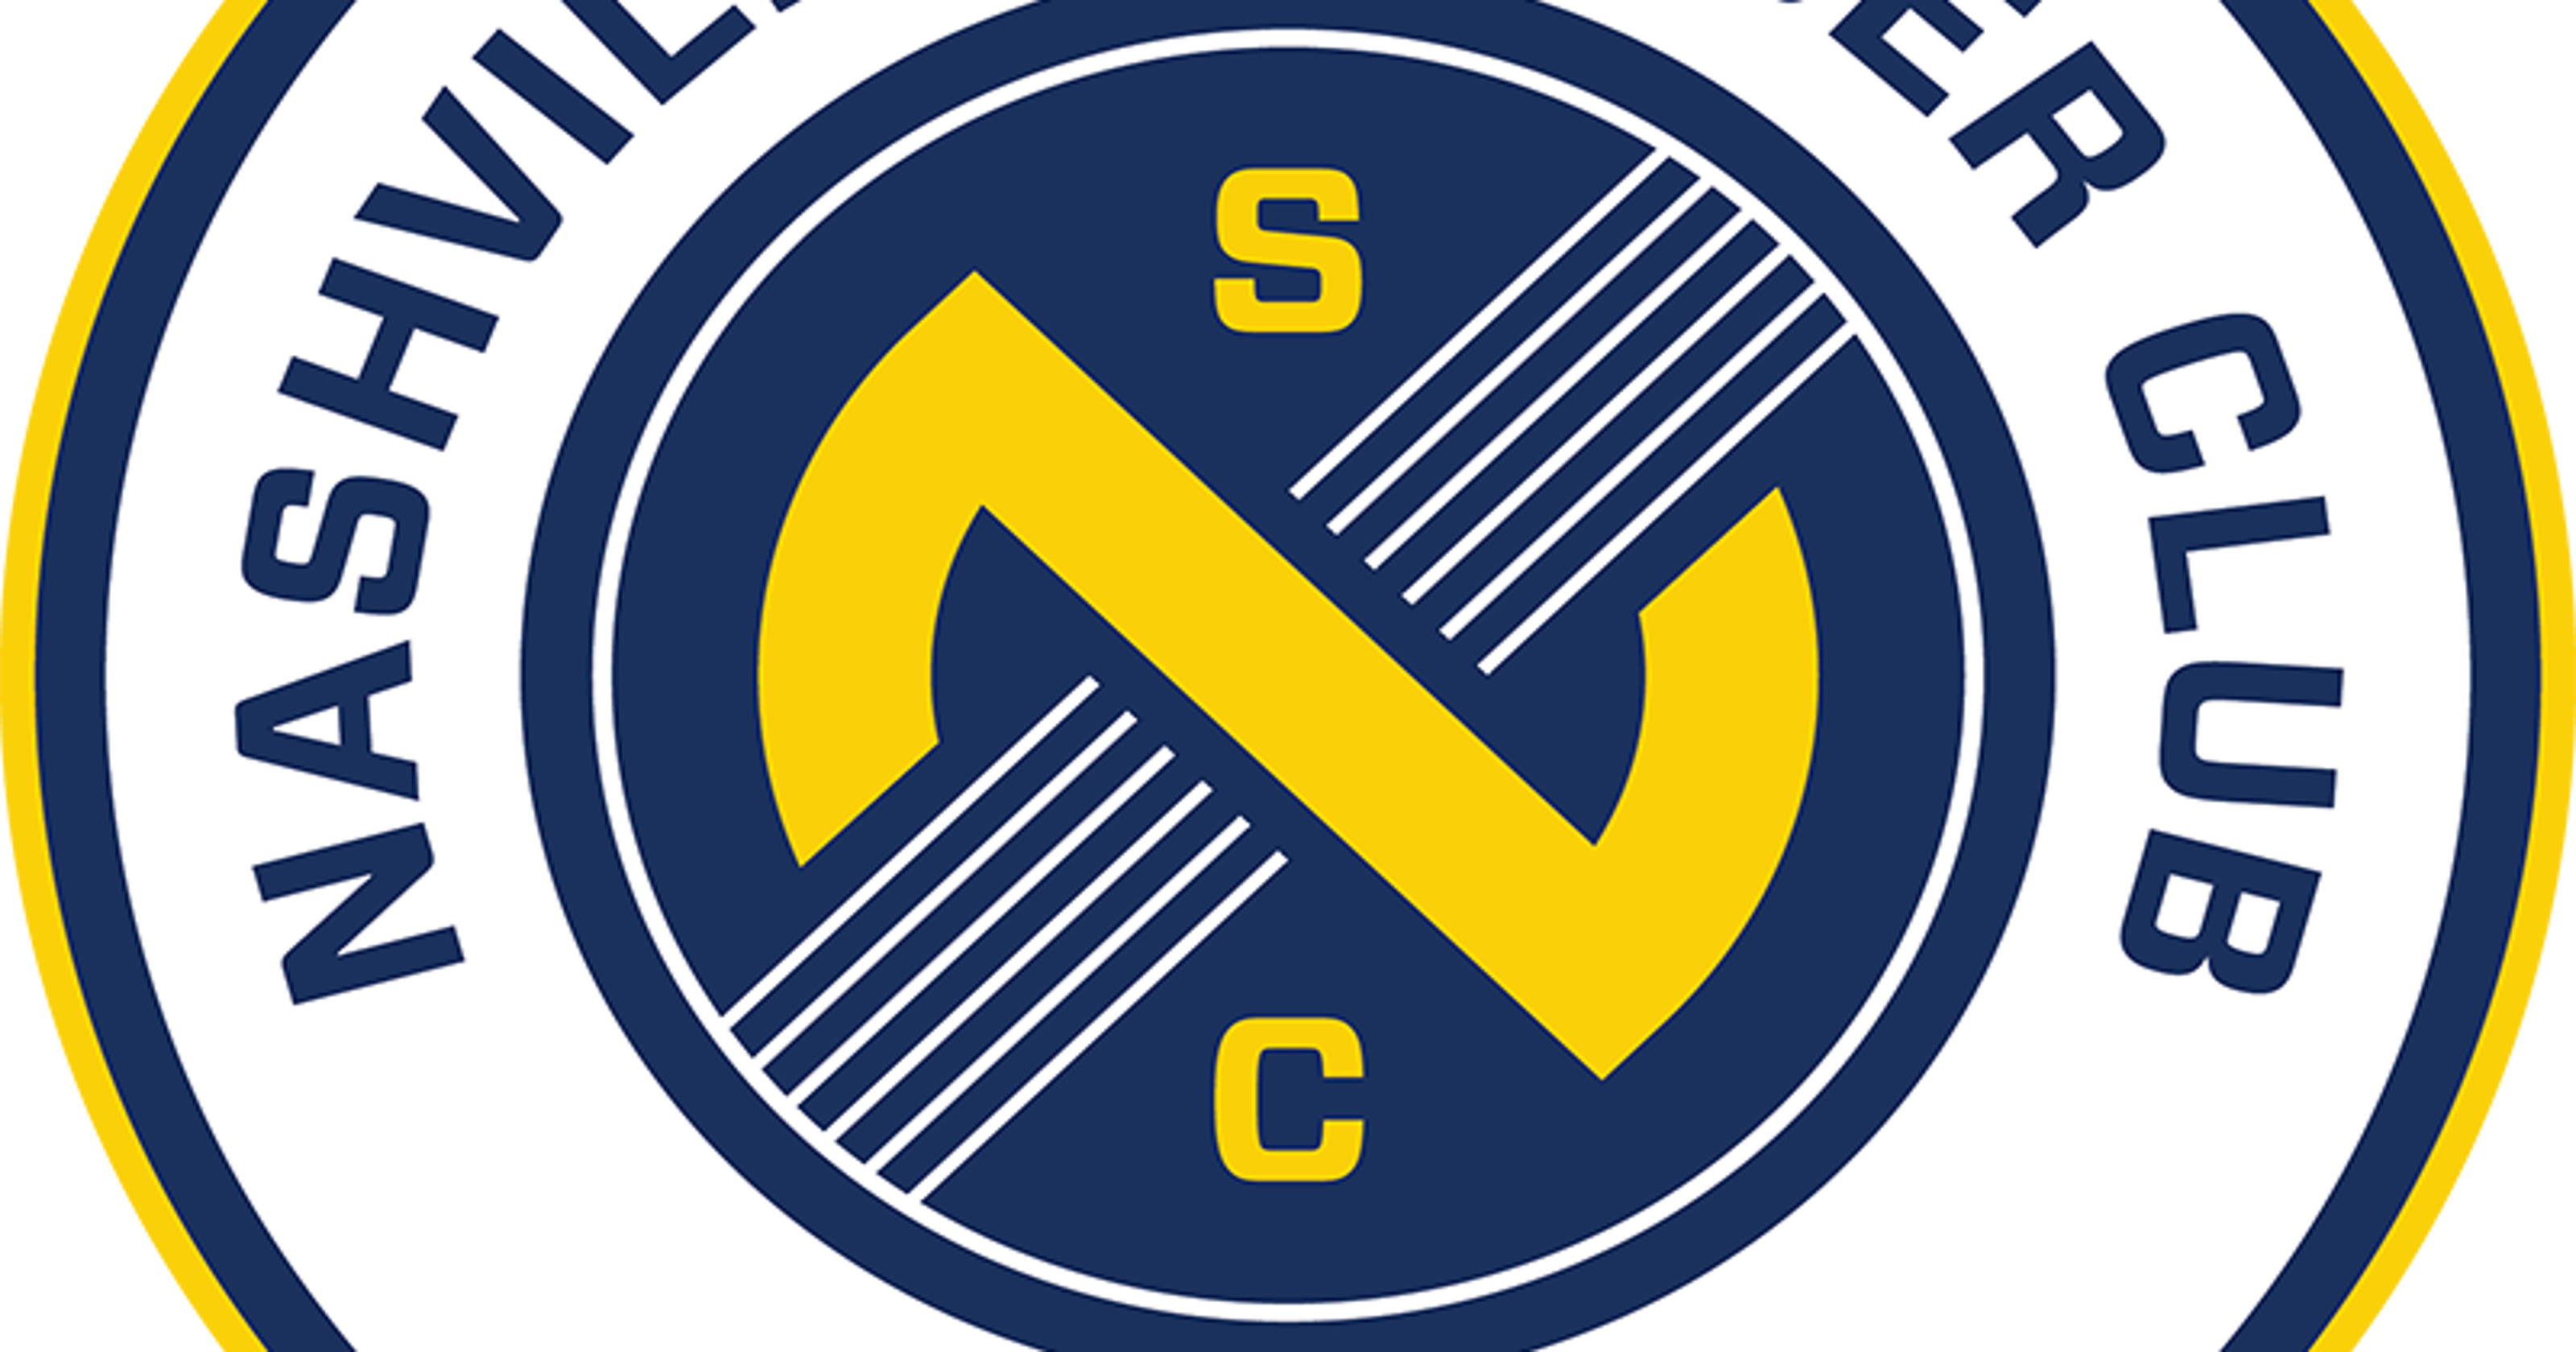 Nashville SC earns spot in round of 16 in US Open Cup with 2-0 win